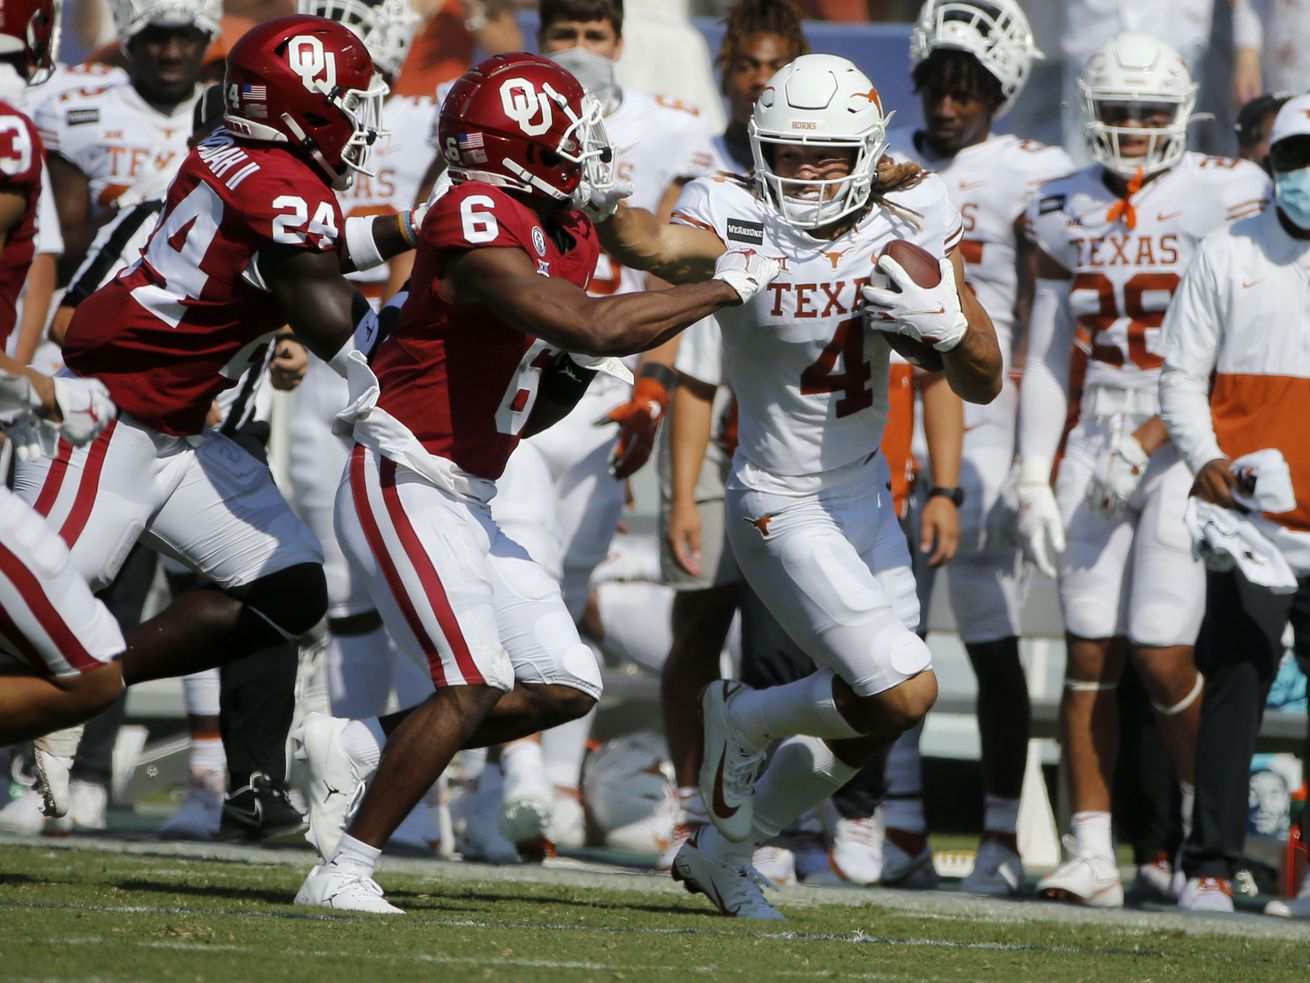 Texas, Oklahoma make first formal move toward leaving Big 12. Now what?